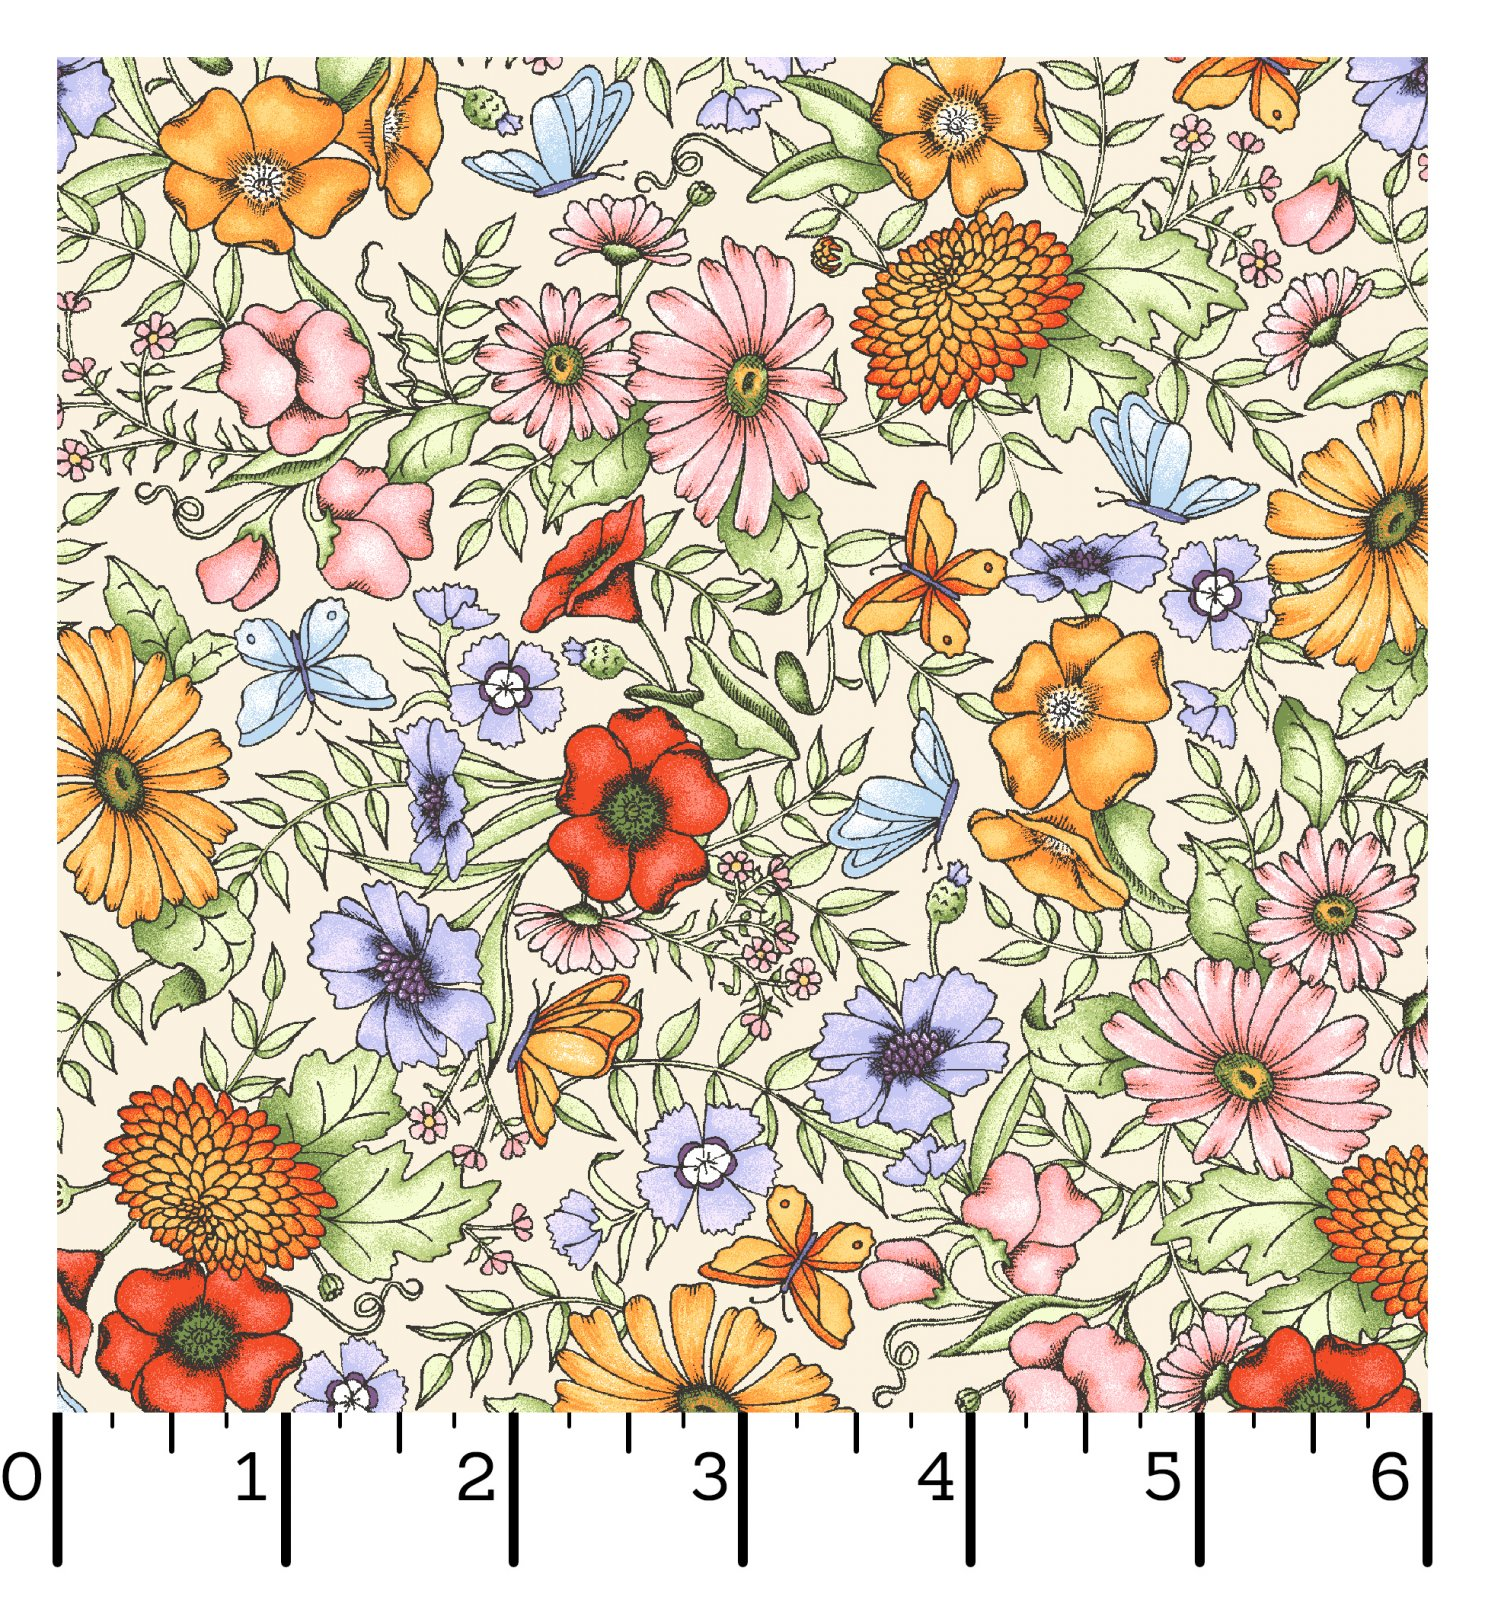 EESC-10122 E - GARDEN STROLL BY KRIS LAMMERS PACKED FLORAL CREAM - ARRIVING IN FEBRUARY 2022